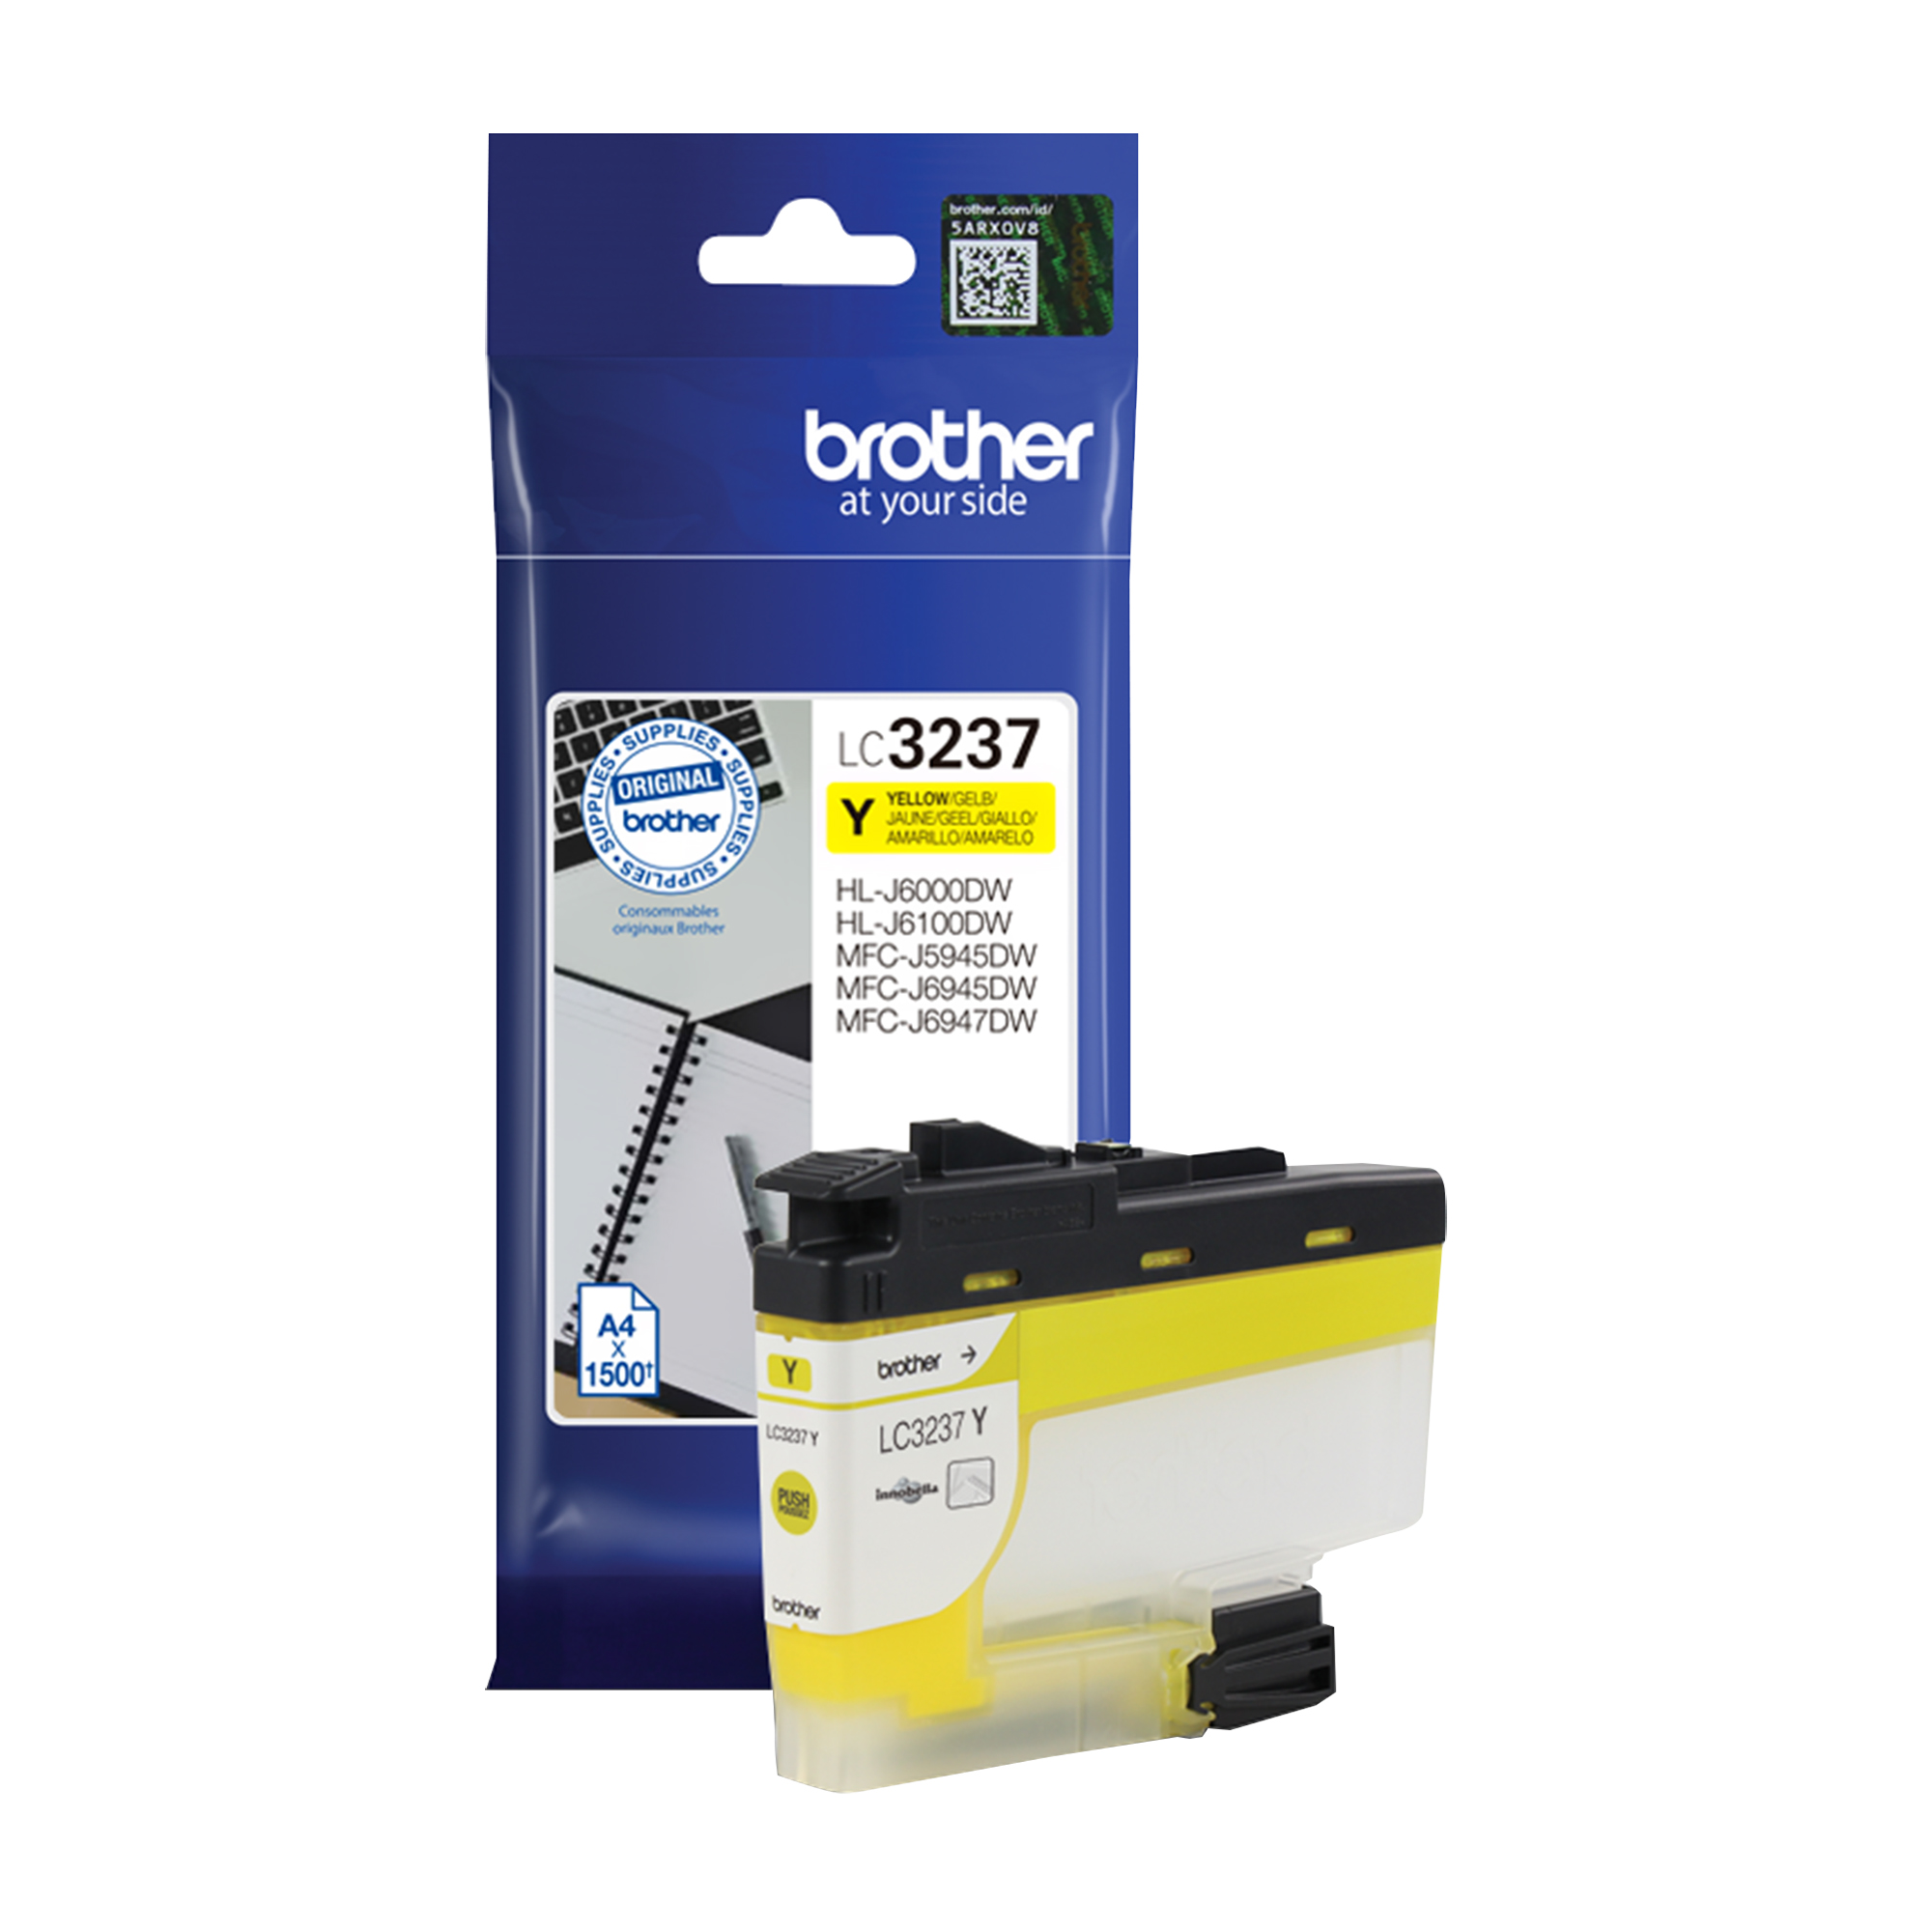 Brother LC3237Y Ink Cartridge Page Life 1500pp Yellow Ref LC3237Y